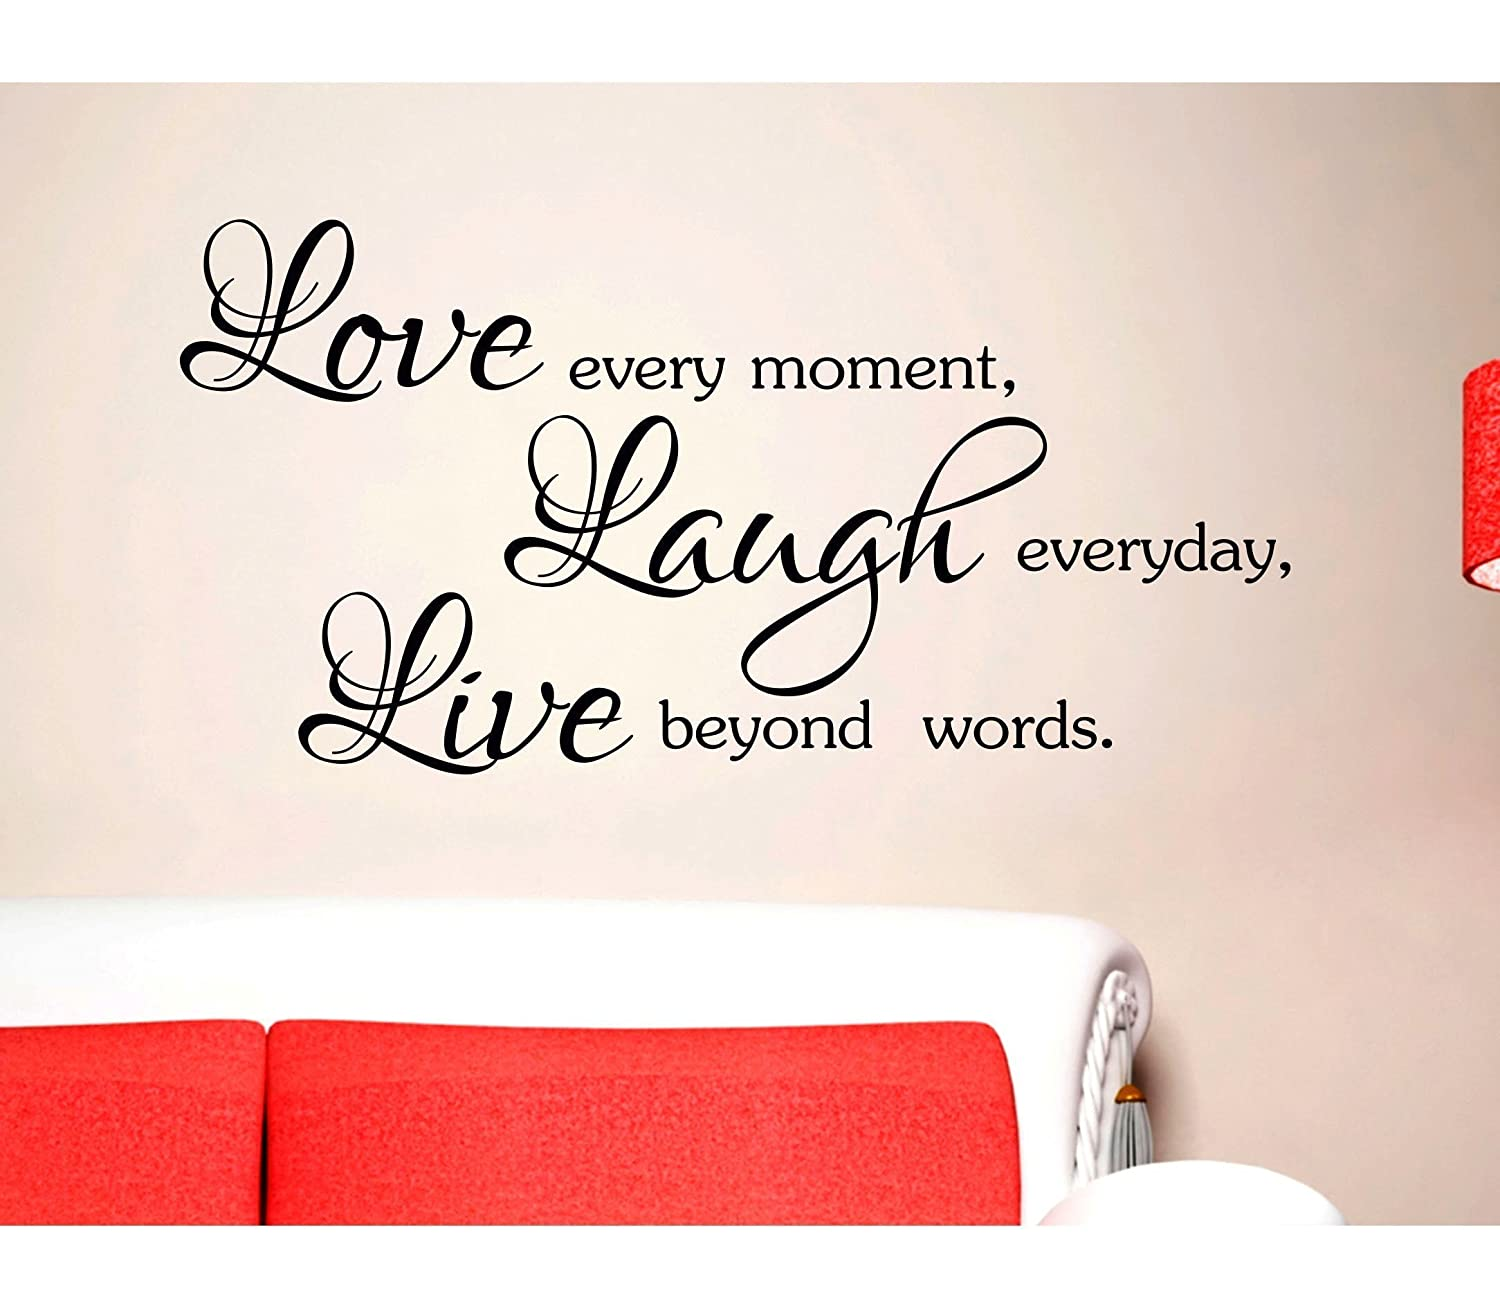 ADESIVI MURALI FRASI CITAZIONI Love Every Moment Laugh Every Day Live Beyond Words AMARSI RIDERE VIVERE WALL STICKERS DECORAZIONE CASA Stickerdesign